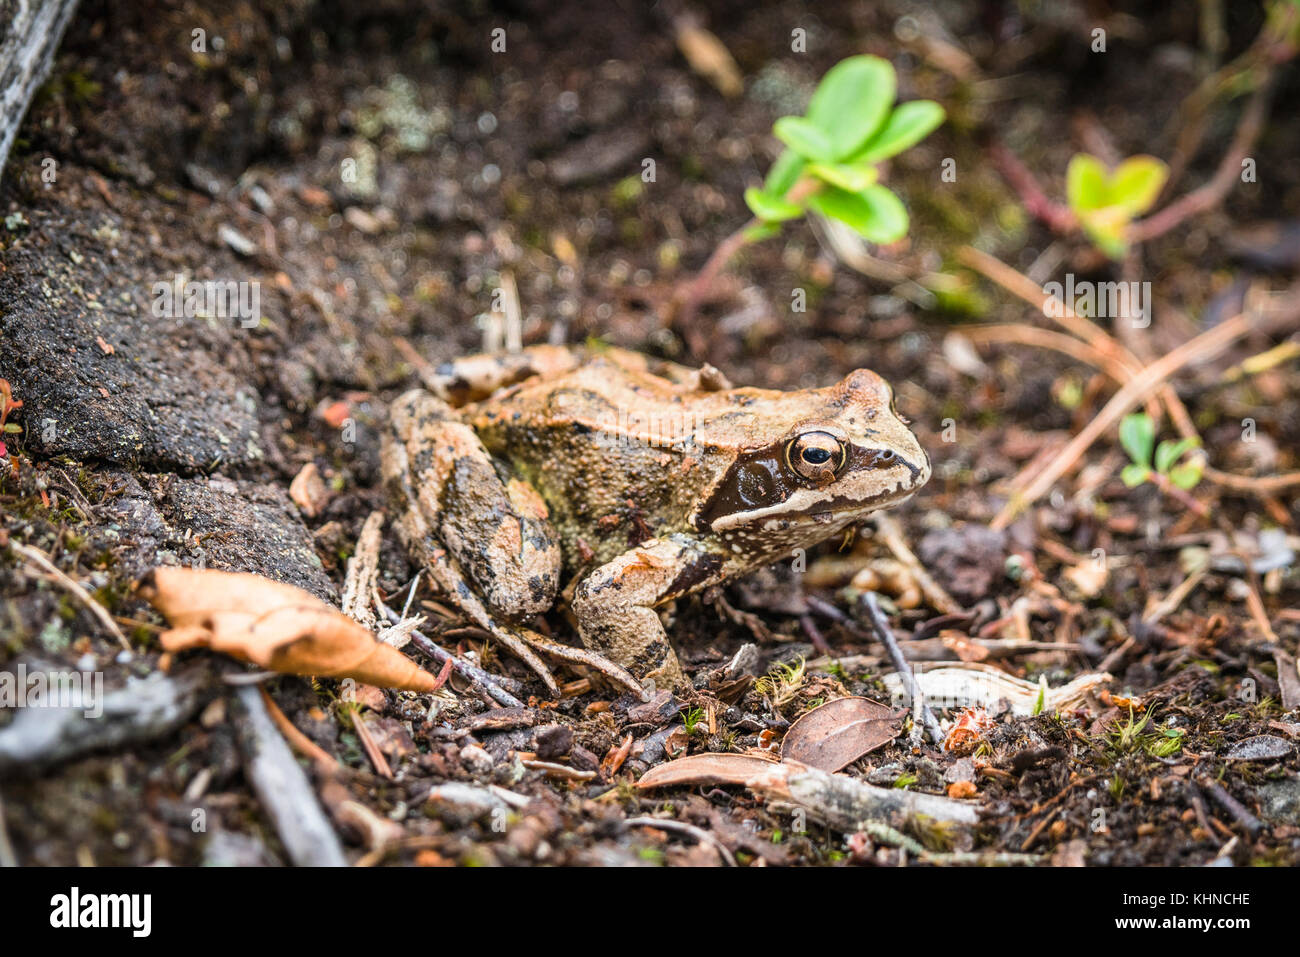 Brown frog with big eyes in the mud in a forest trying to camouflage in the surrounding nature - Stock Image